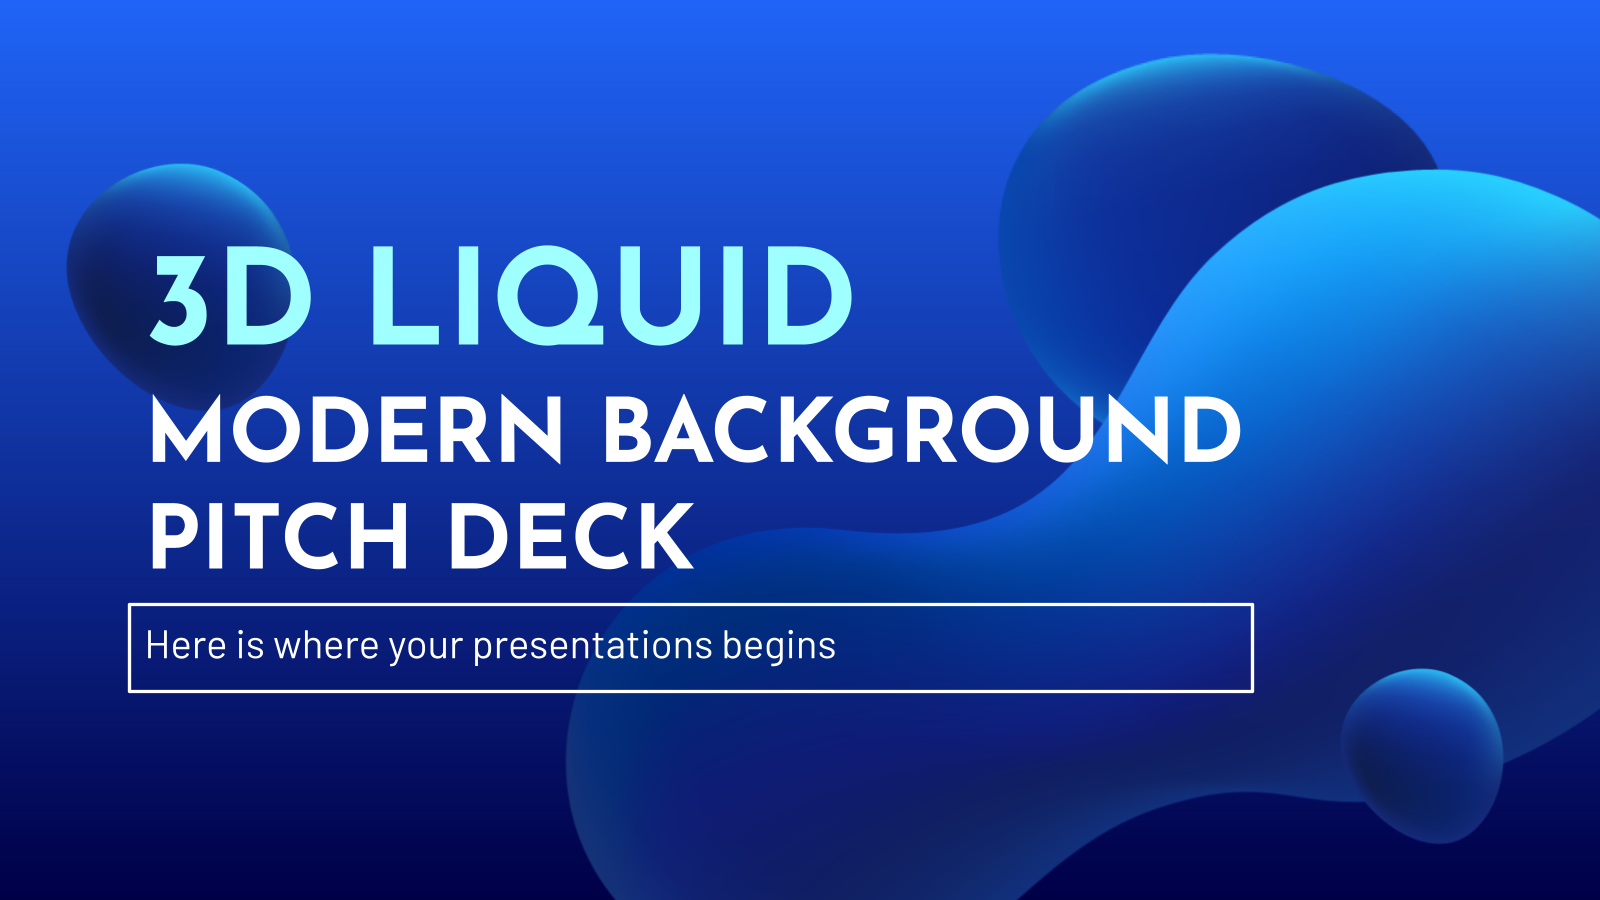 3D Liquid Modern Background Pitch Deck presentation template